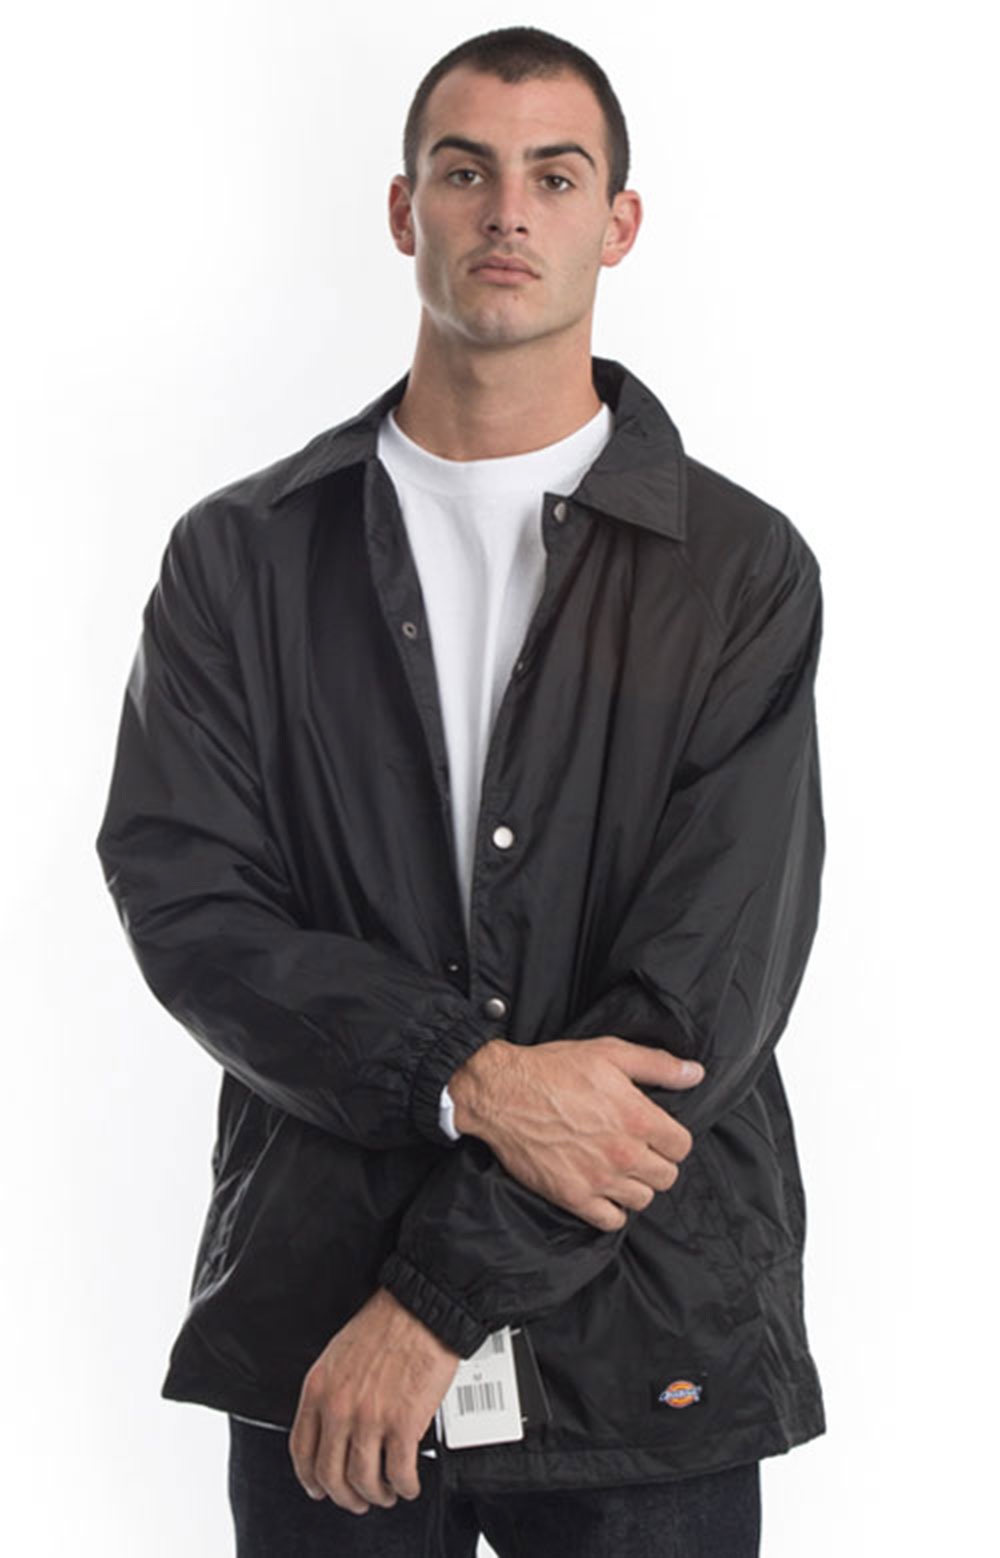 (76242BK) Snap Front Nylon Jacket - Black 4